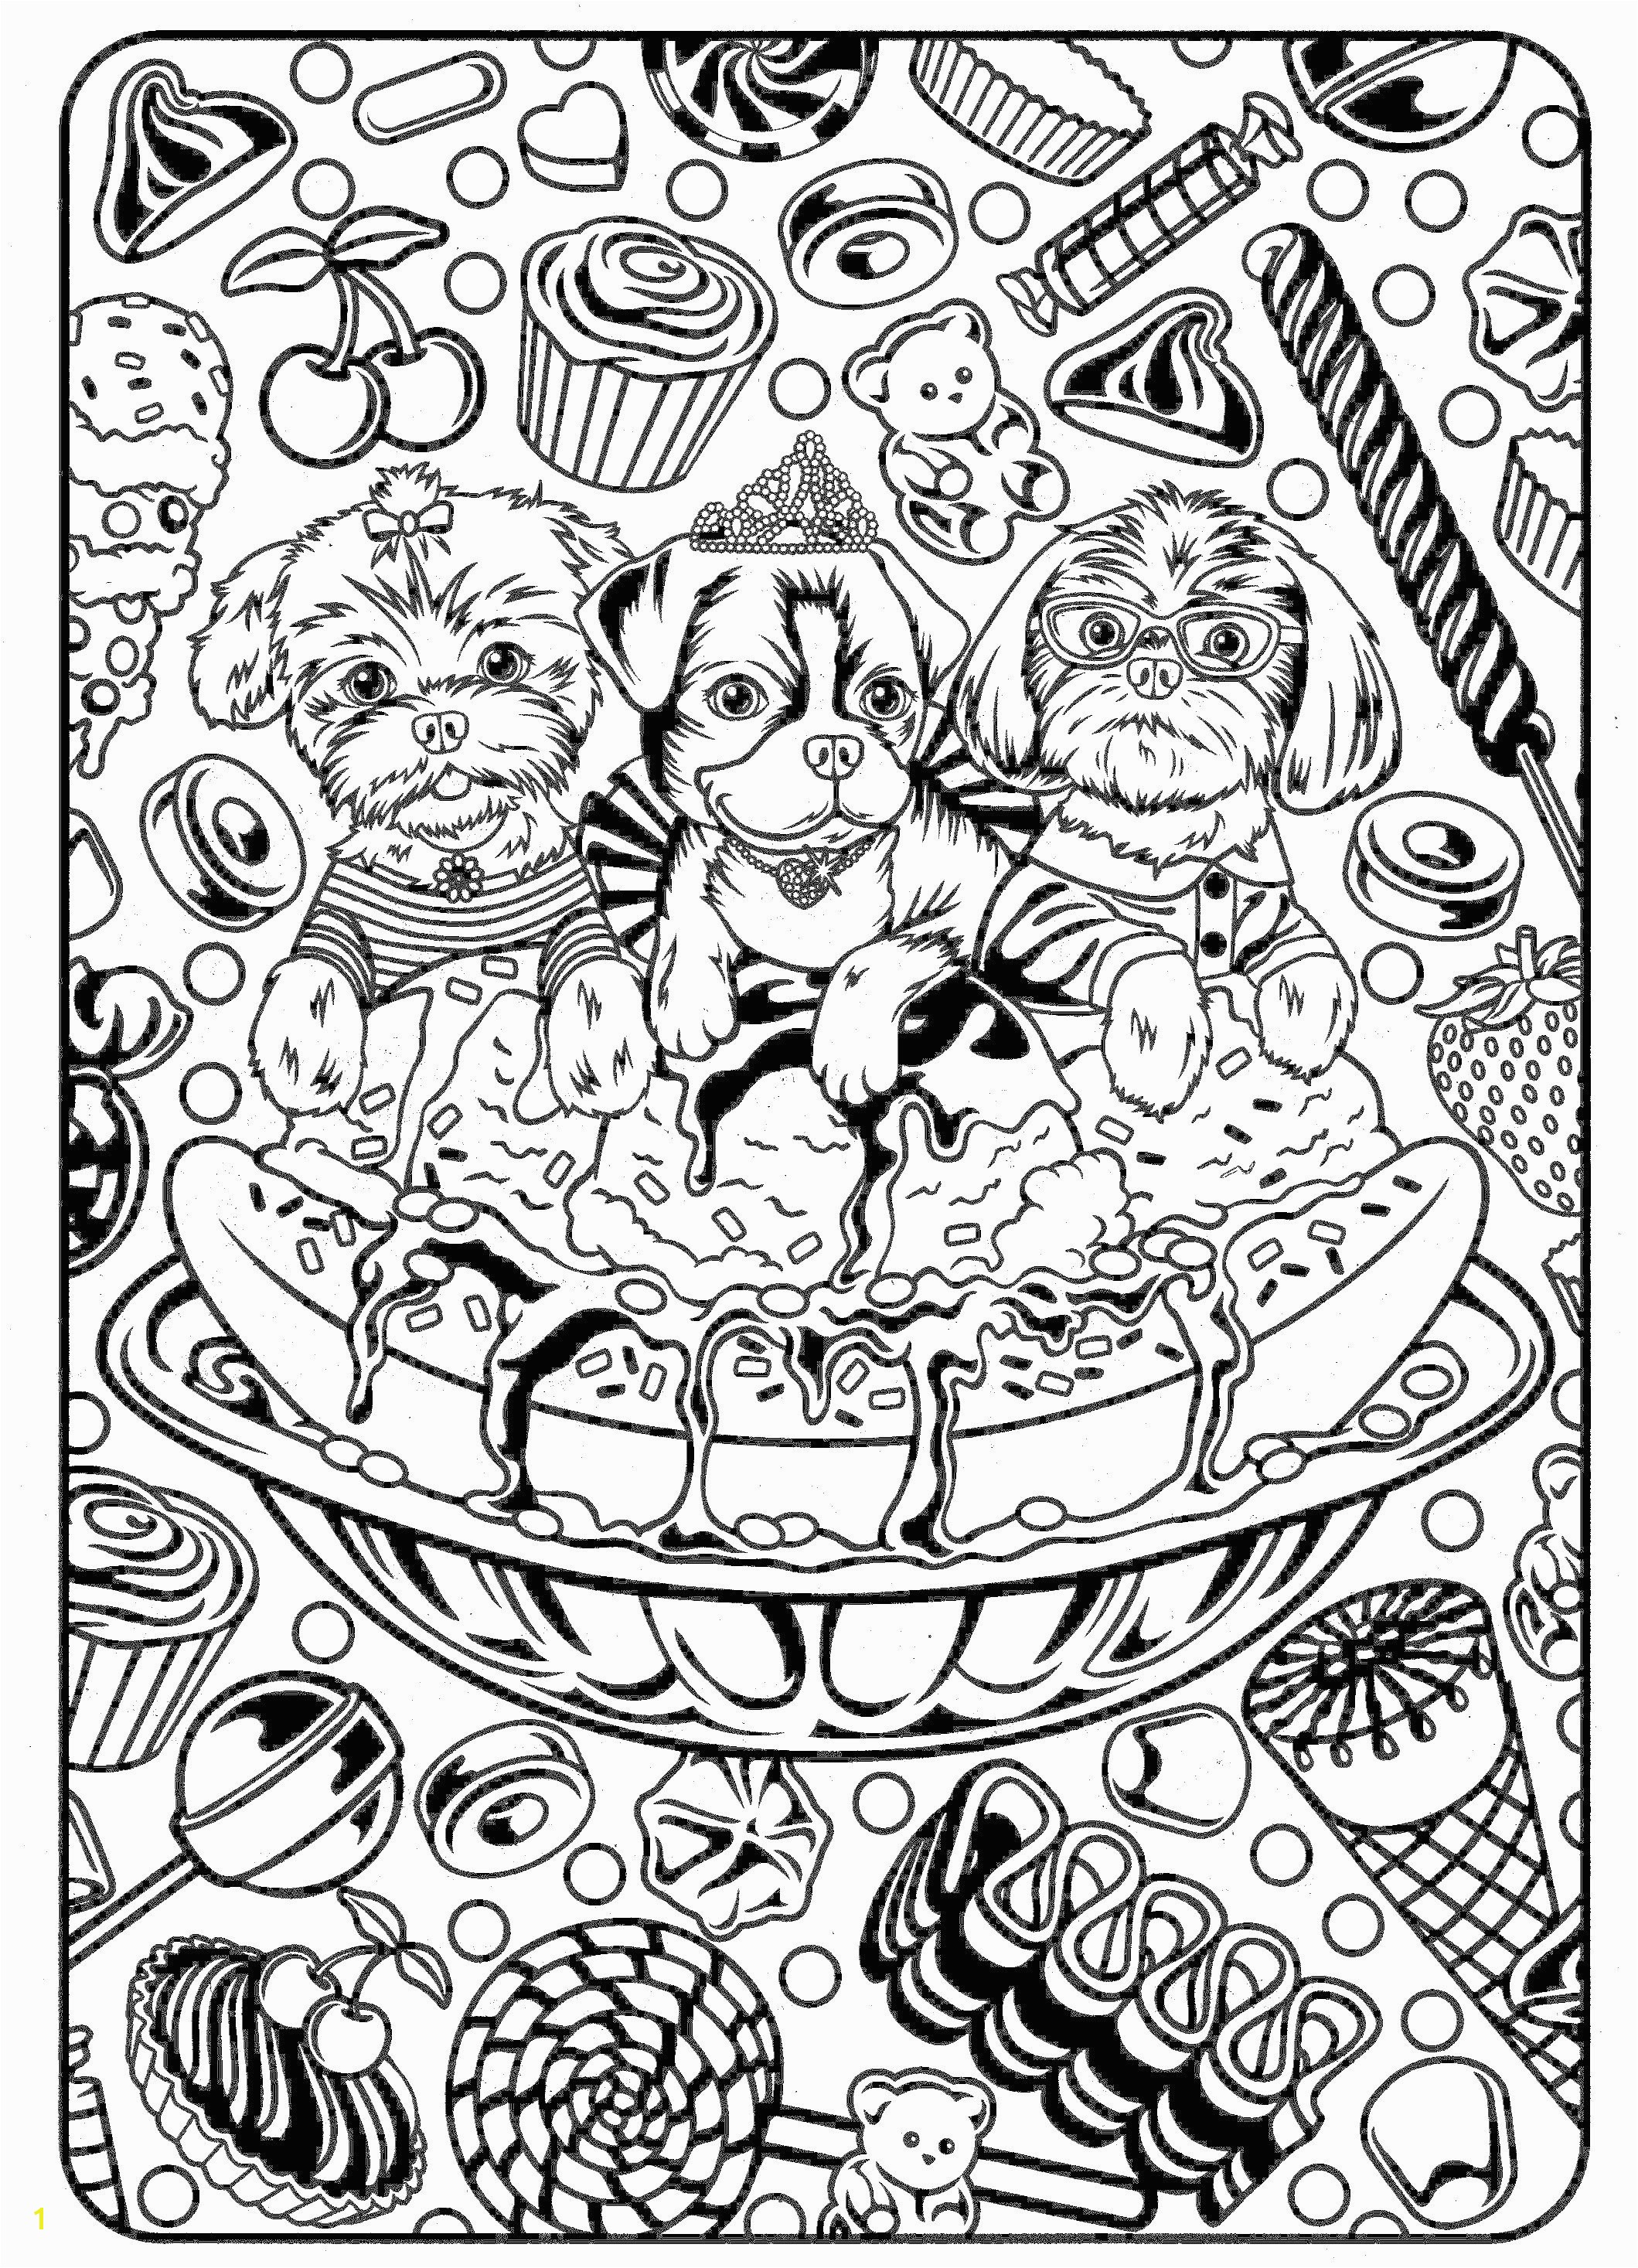 Half Dollar Coloring Page California Coloring Pages 13 Elegant Half Dollar Coloring Page Pics